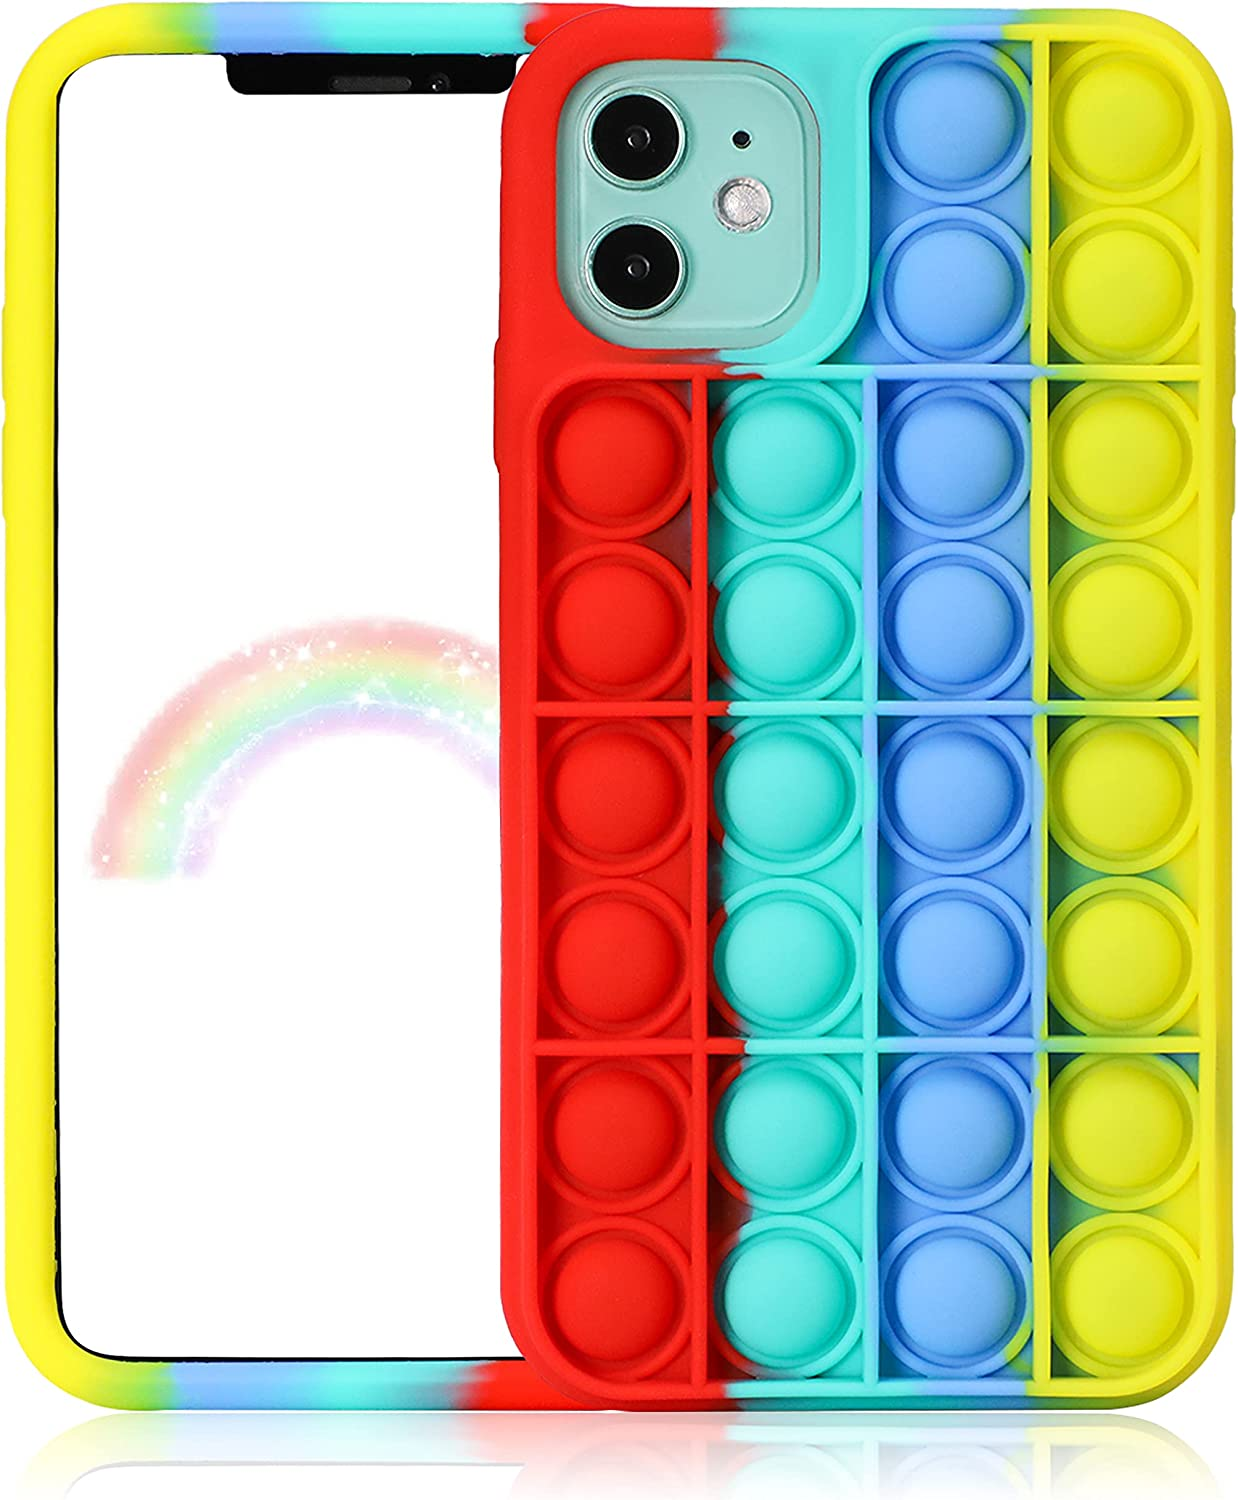 Jowhep for iPhone 12 Pro Max Case Cover Cases Silicone Cartoon Fun Funny Kawaii Cute Aesthetic Design Fidget Protective Unique for Girls Boys Women Teen-Red Green (for iPhone 12 Pro Max 6.7